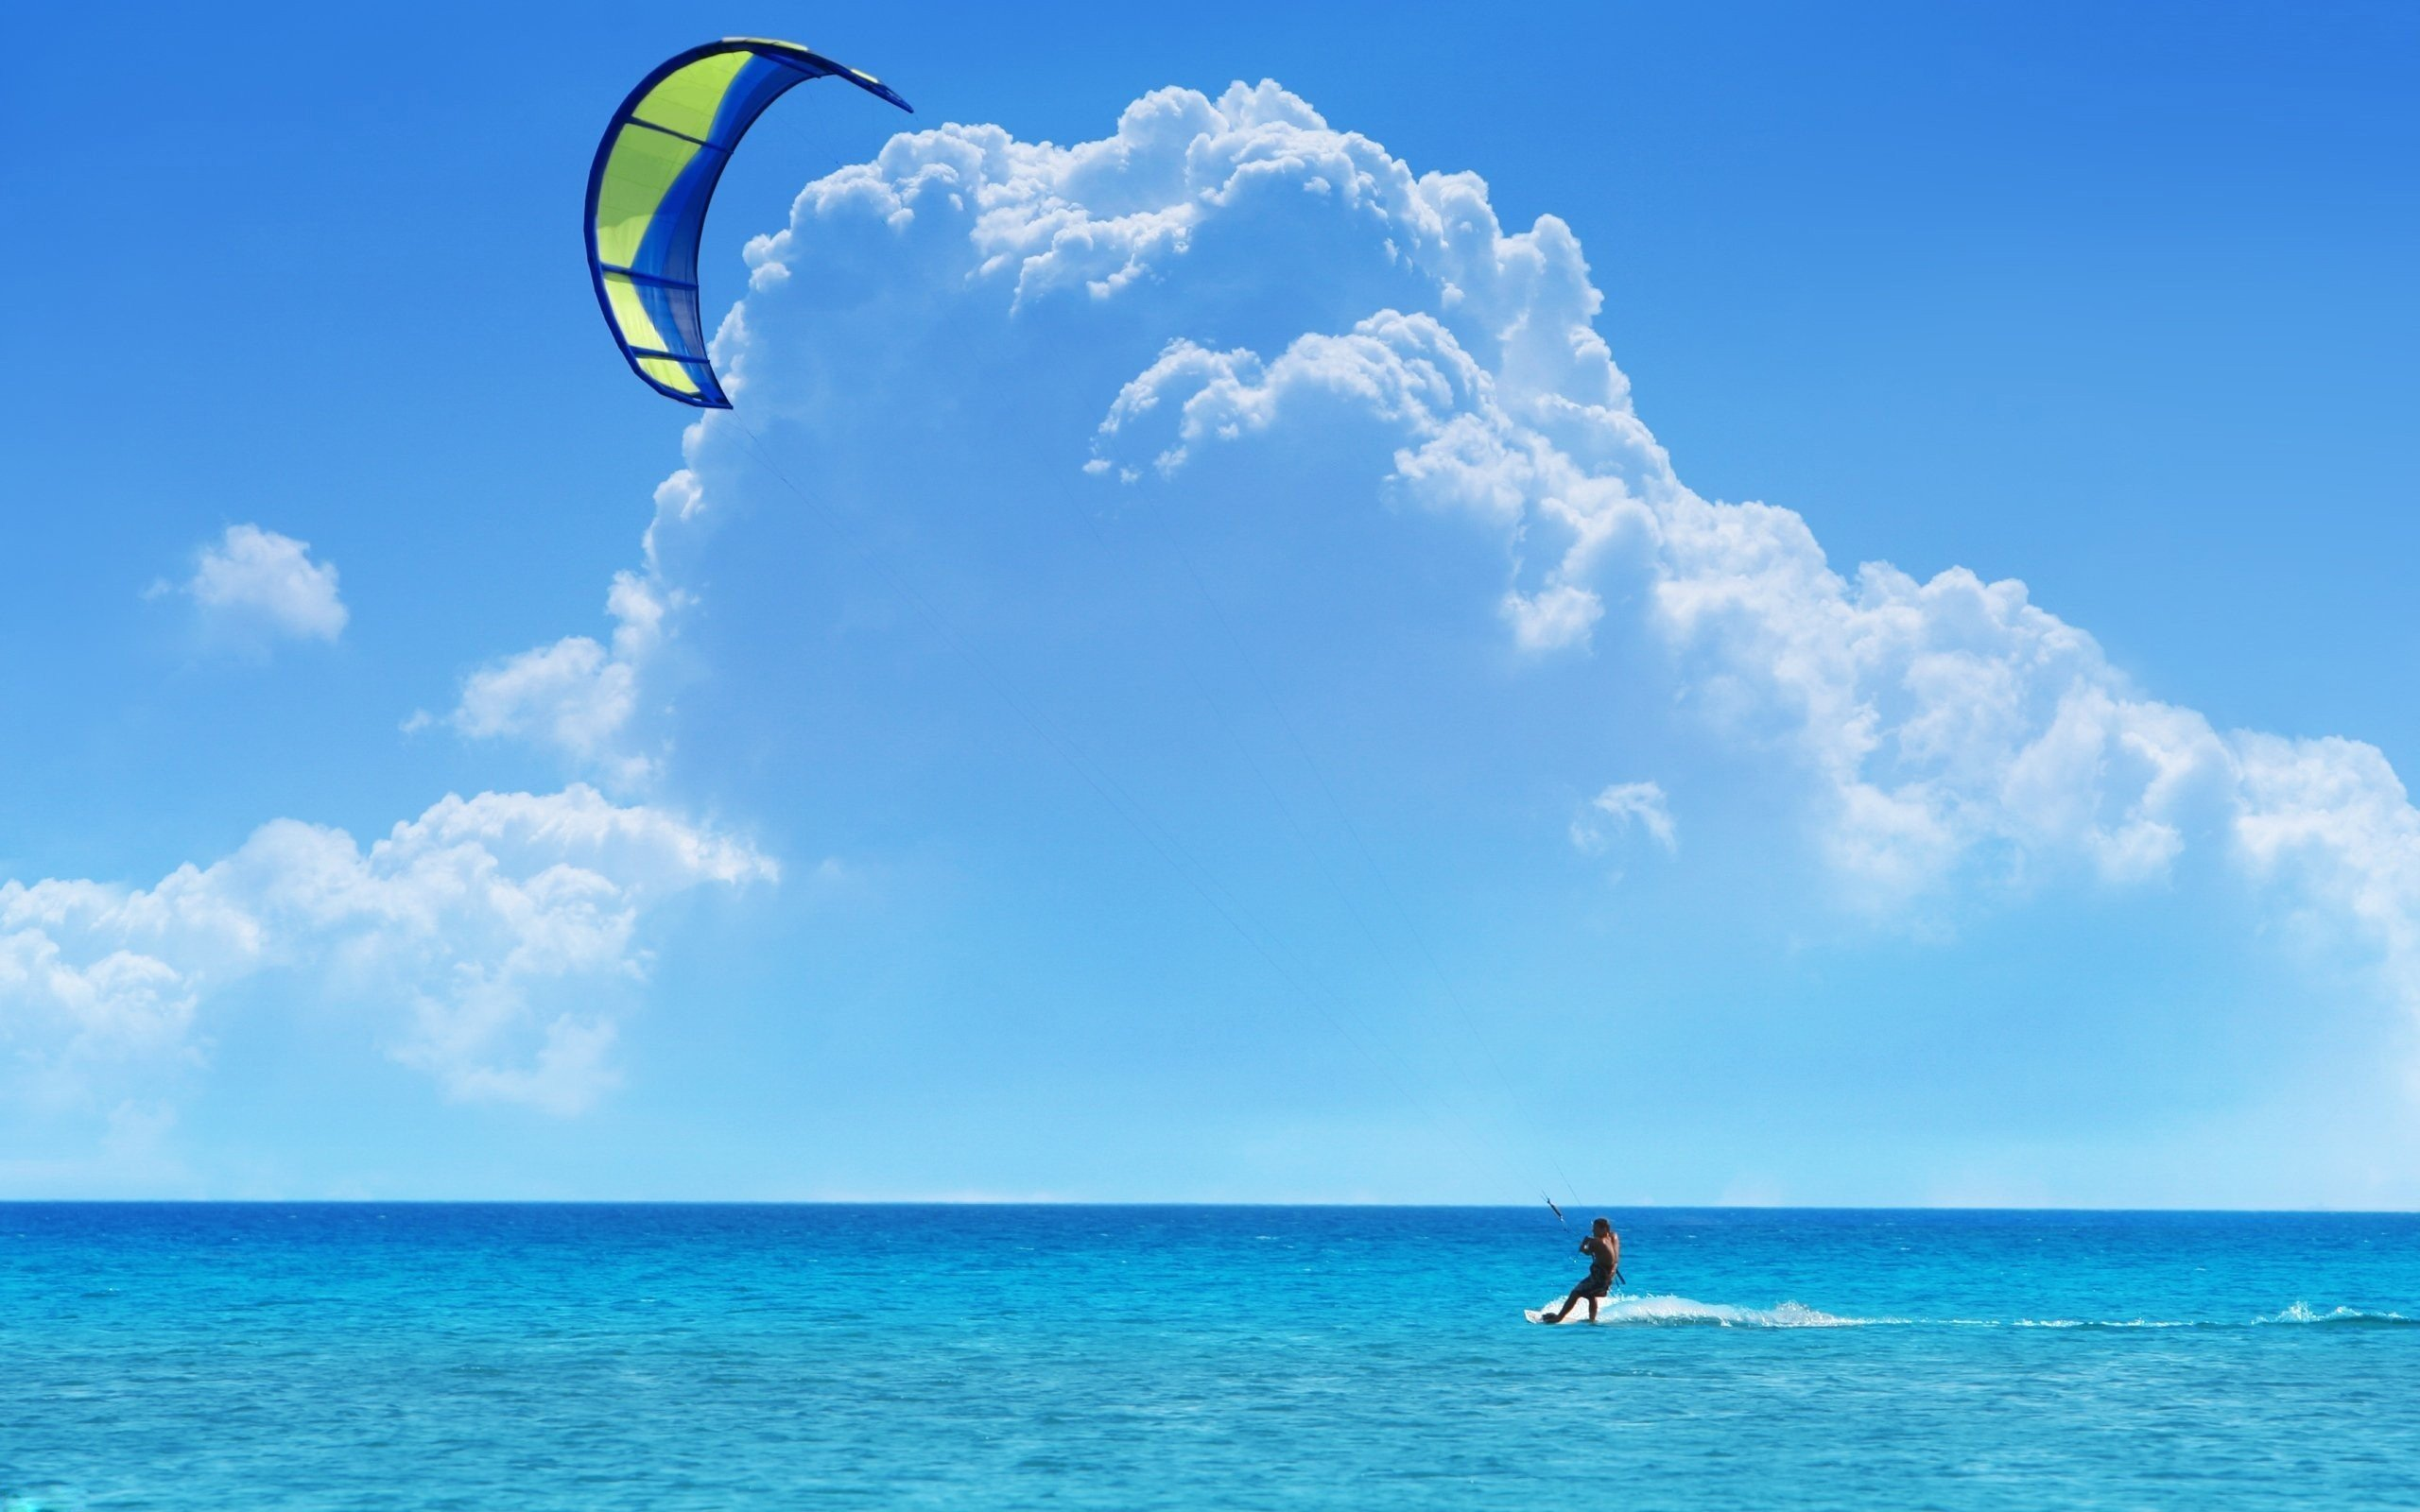 Kitesurfing wallpapers and images - wallpapers, pictures, photos